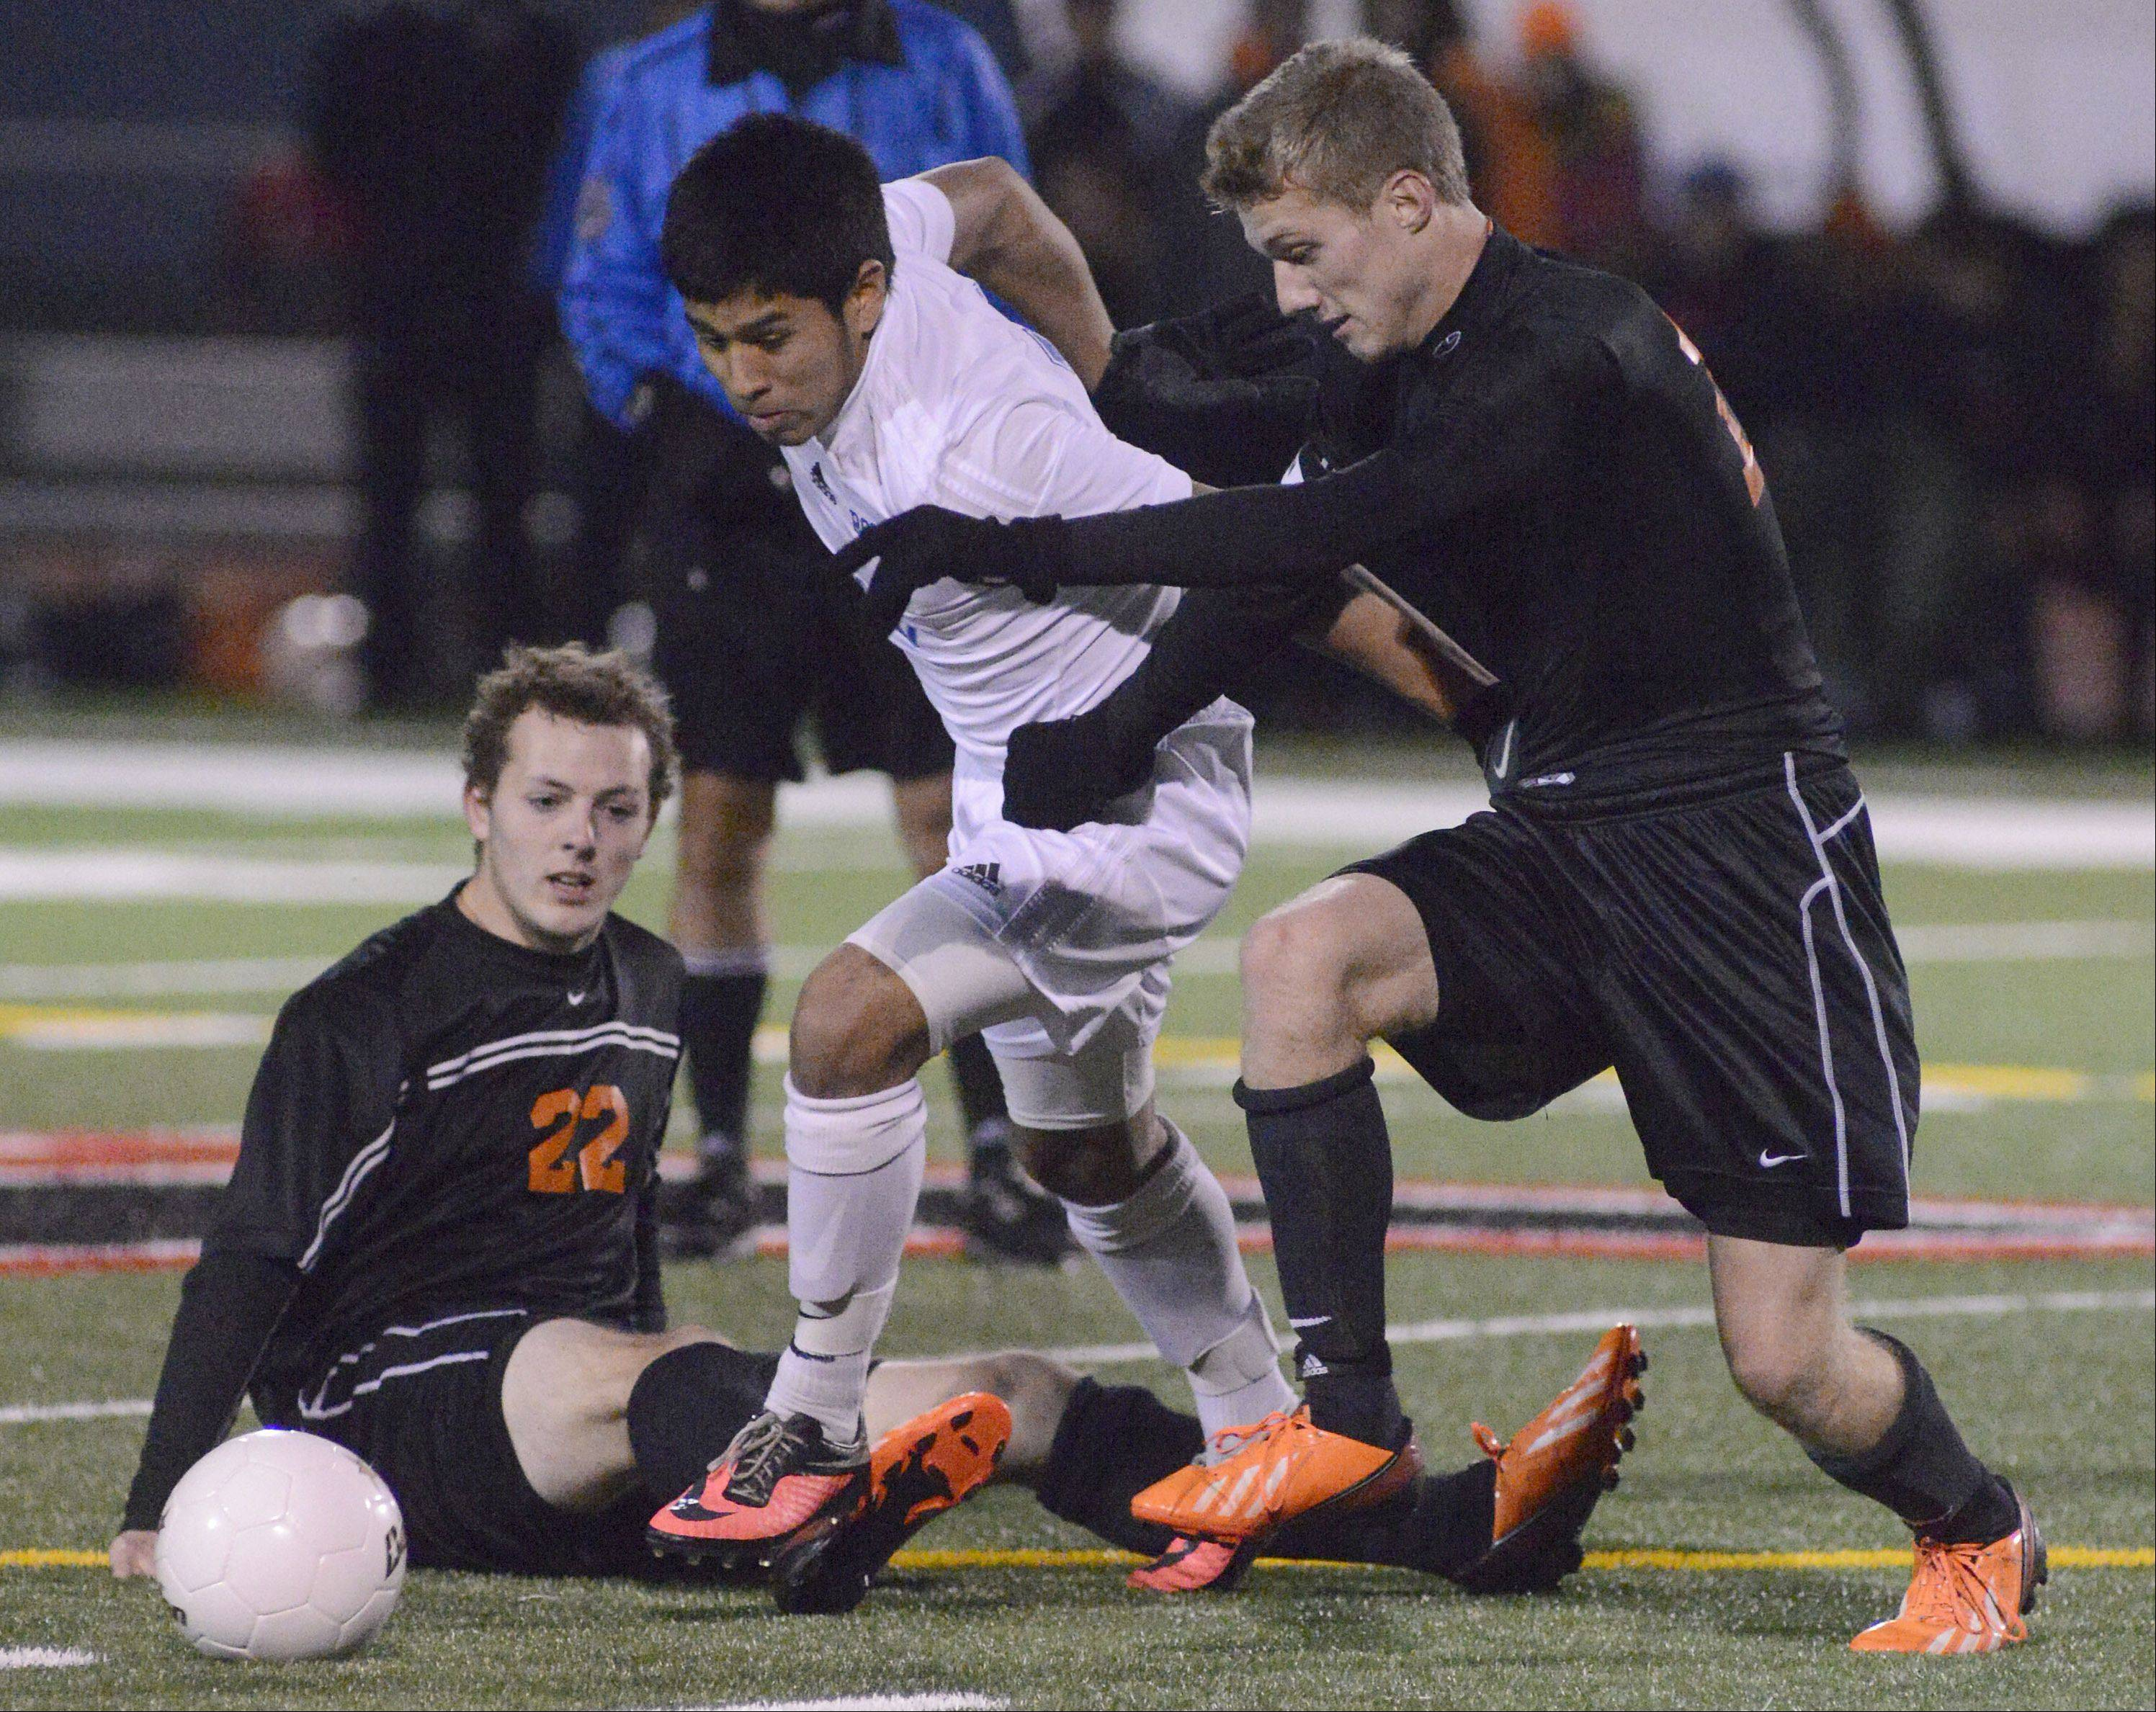 McHenry's Kyle Marsh (22) goes down while teammate Evan Hying continues the fight for the ball with Larkin's Gonsalo Garcia in the second half of the Class 3A sectional championship at Huntley High School on Saturday, November 2.